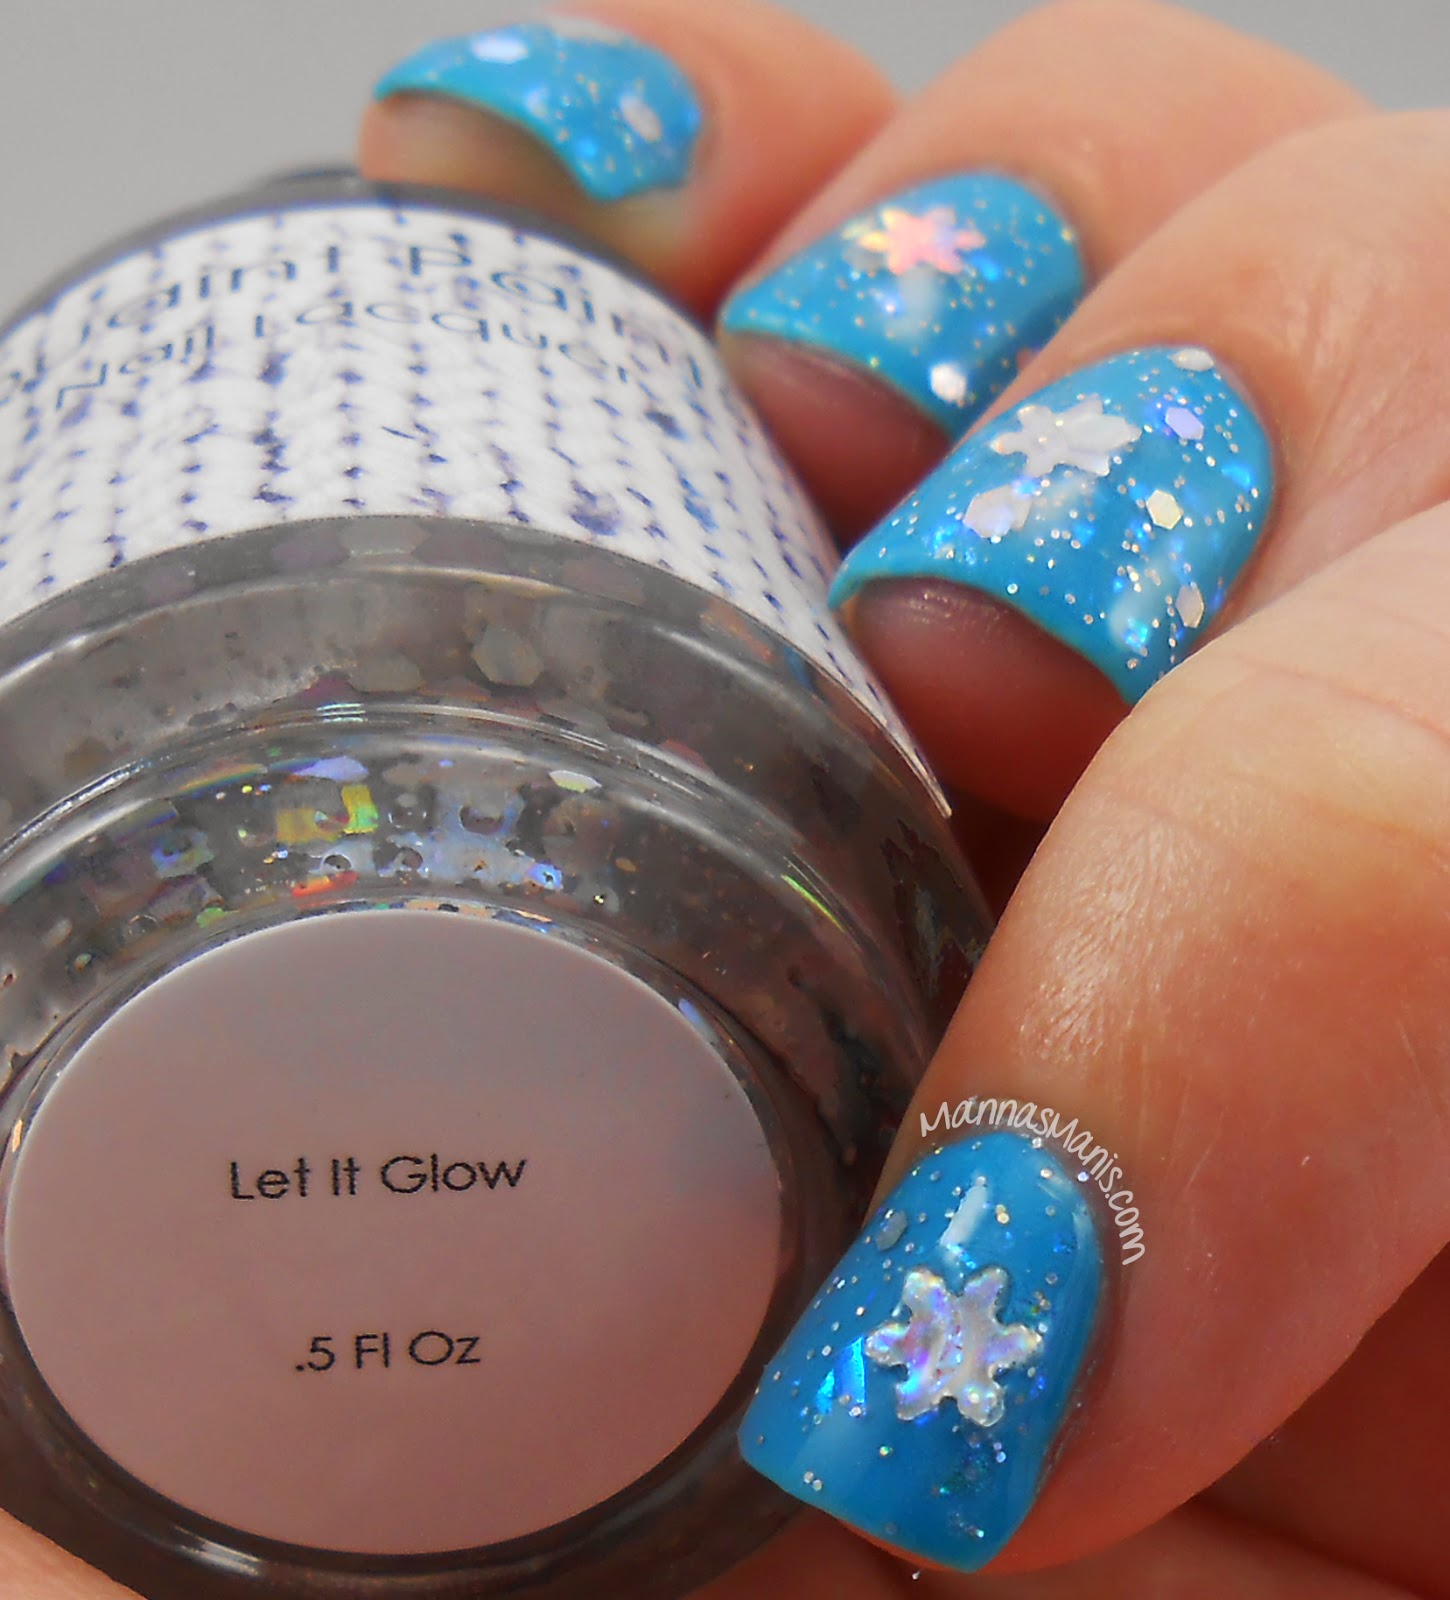 Quaint Paints let it glow, a glow in the dark nail polish